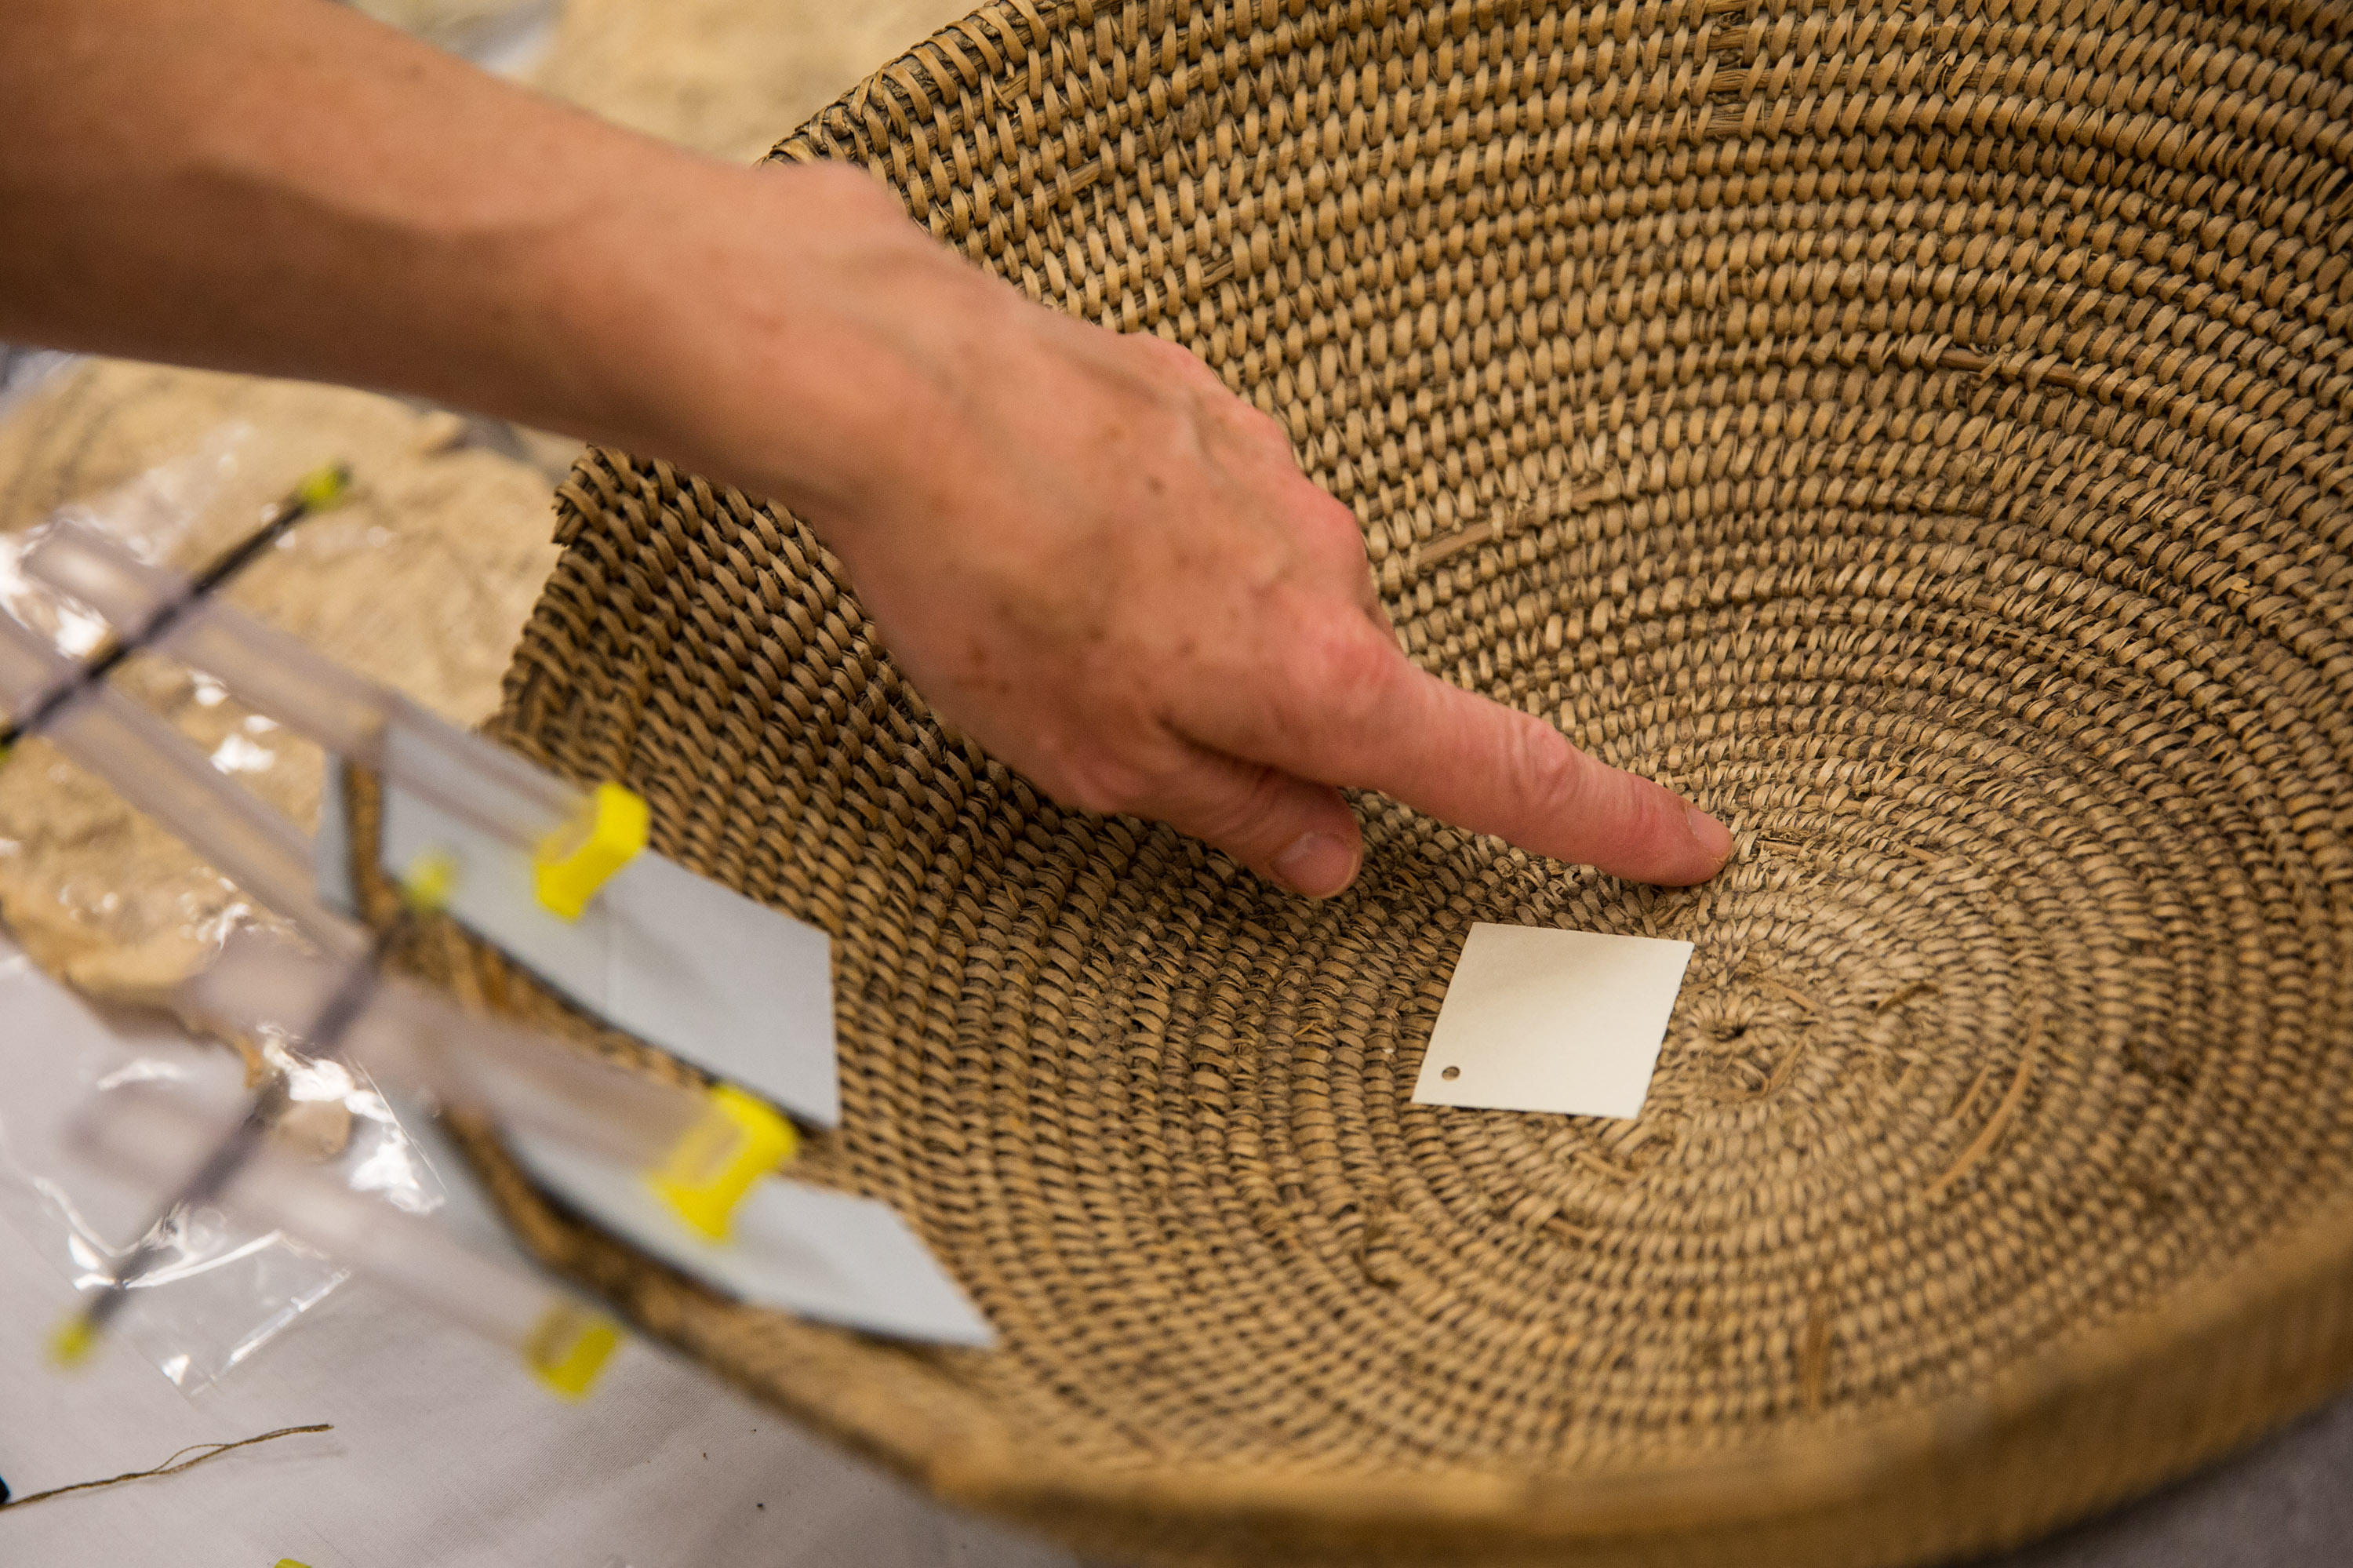 Woman examining damaged basket and preparing to restore it.